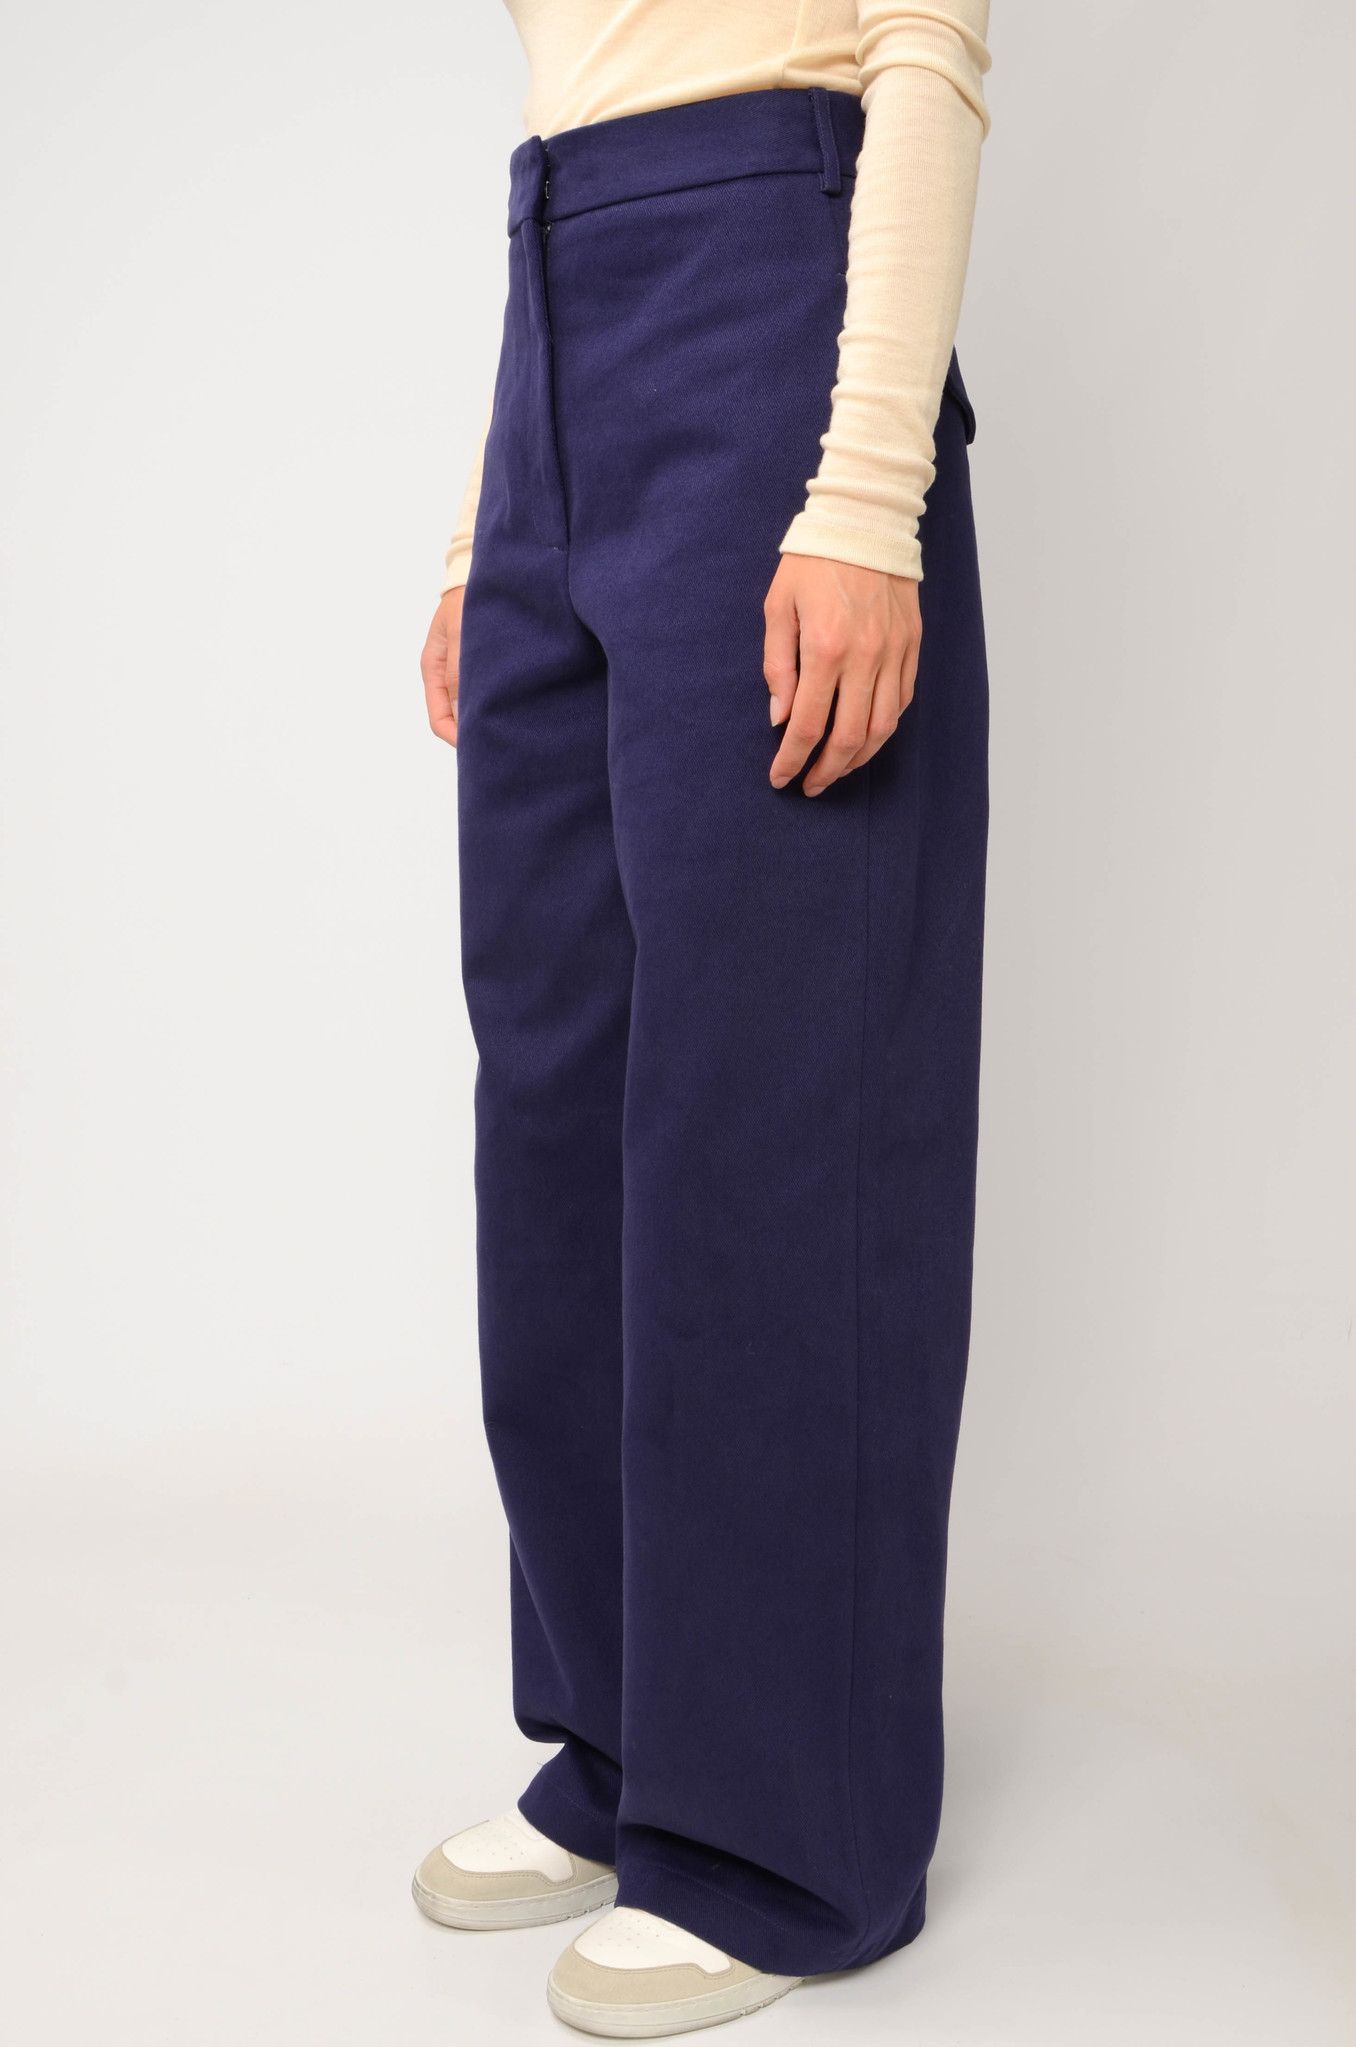 ANNIE TROUSERS IN NAVY BLUE-3